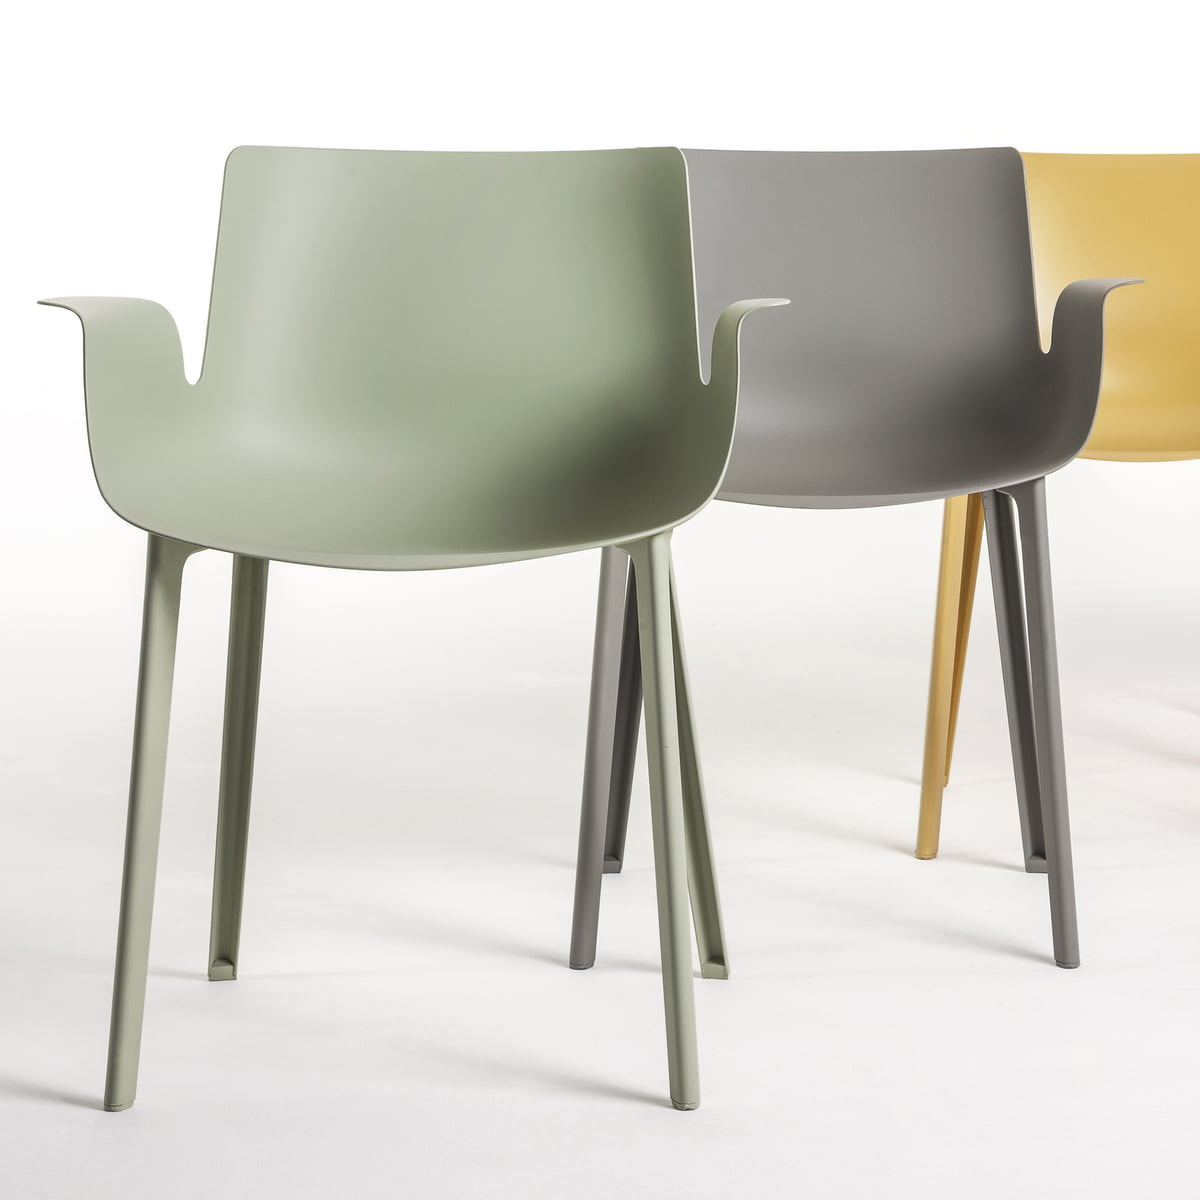 Piuma Chair By Kartell In The Shop